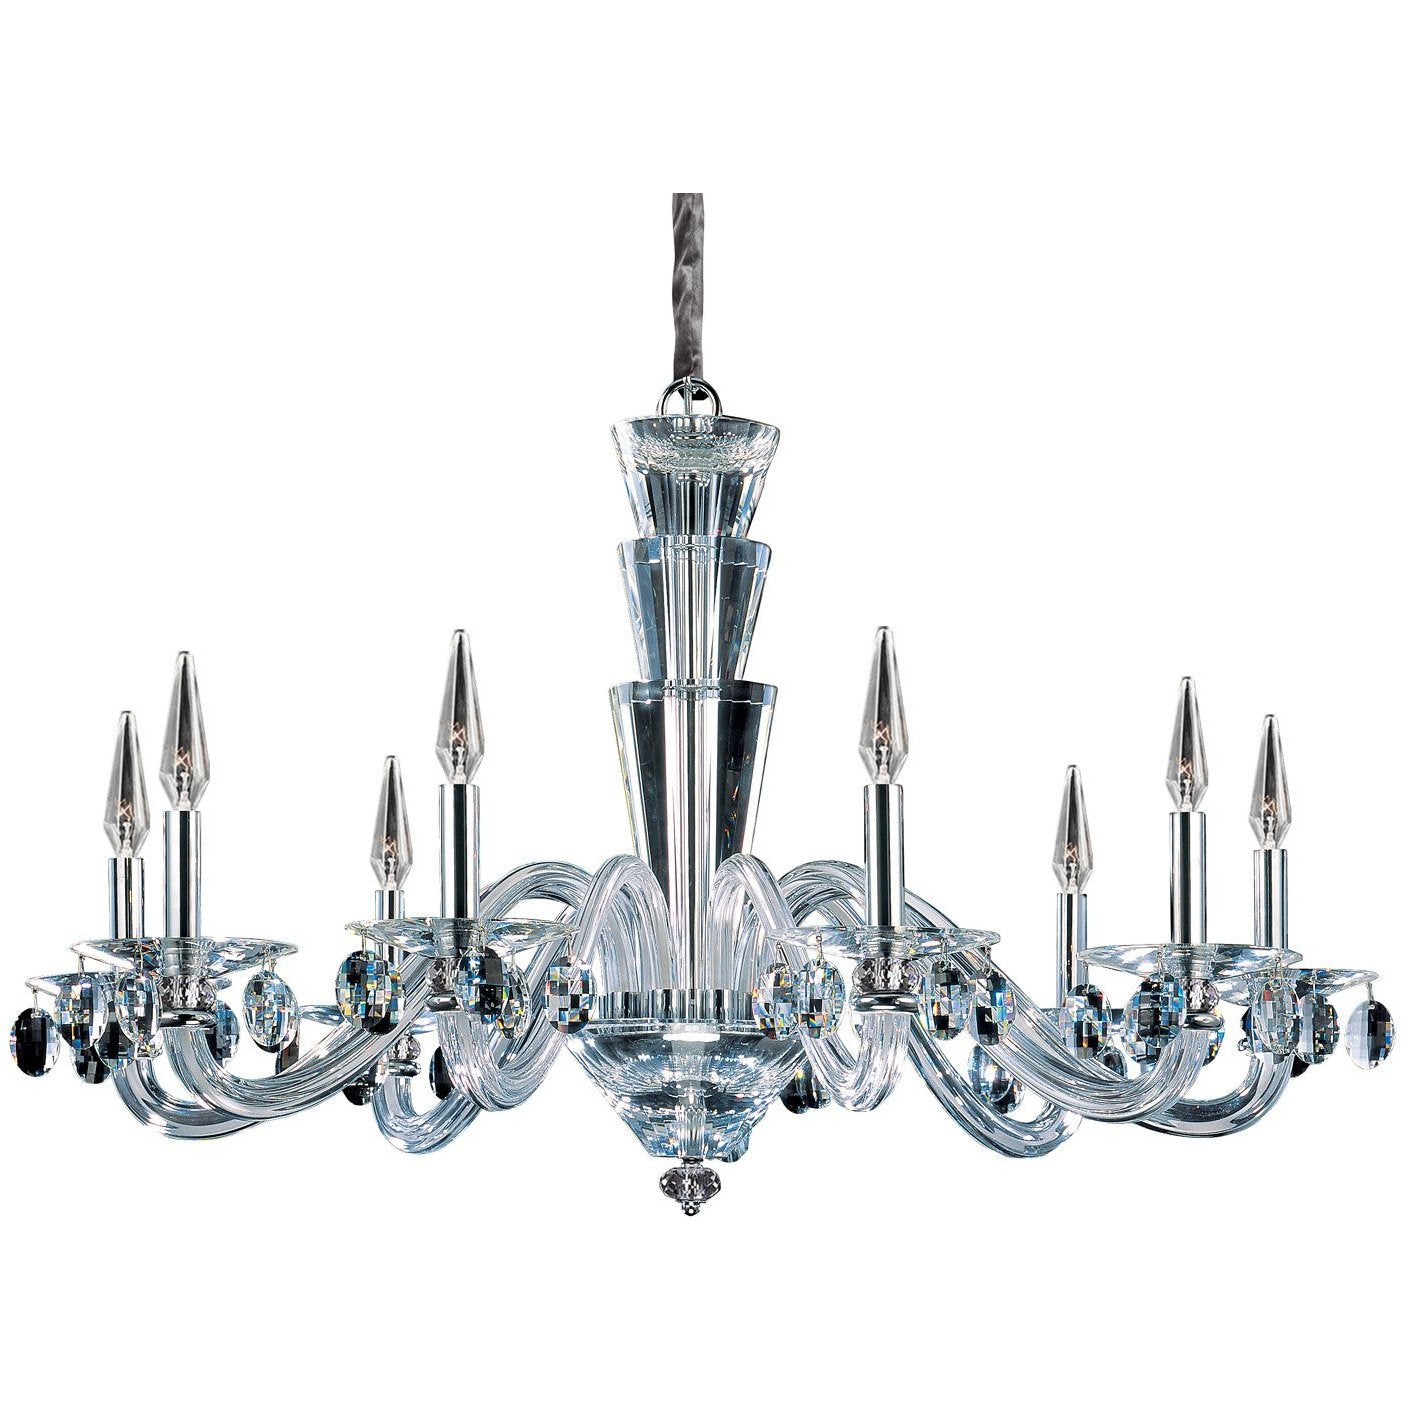 Allegri by Kalco Lighting Chandeliers Chrome / Firenze Clear Fanshawe 9 Light Chandelier From Allegri by Kalco Lighting 11529